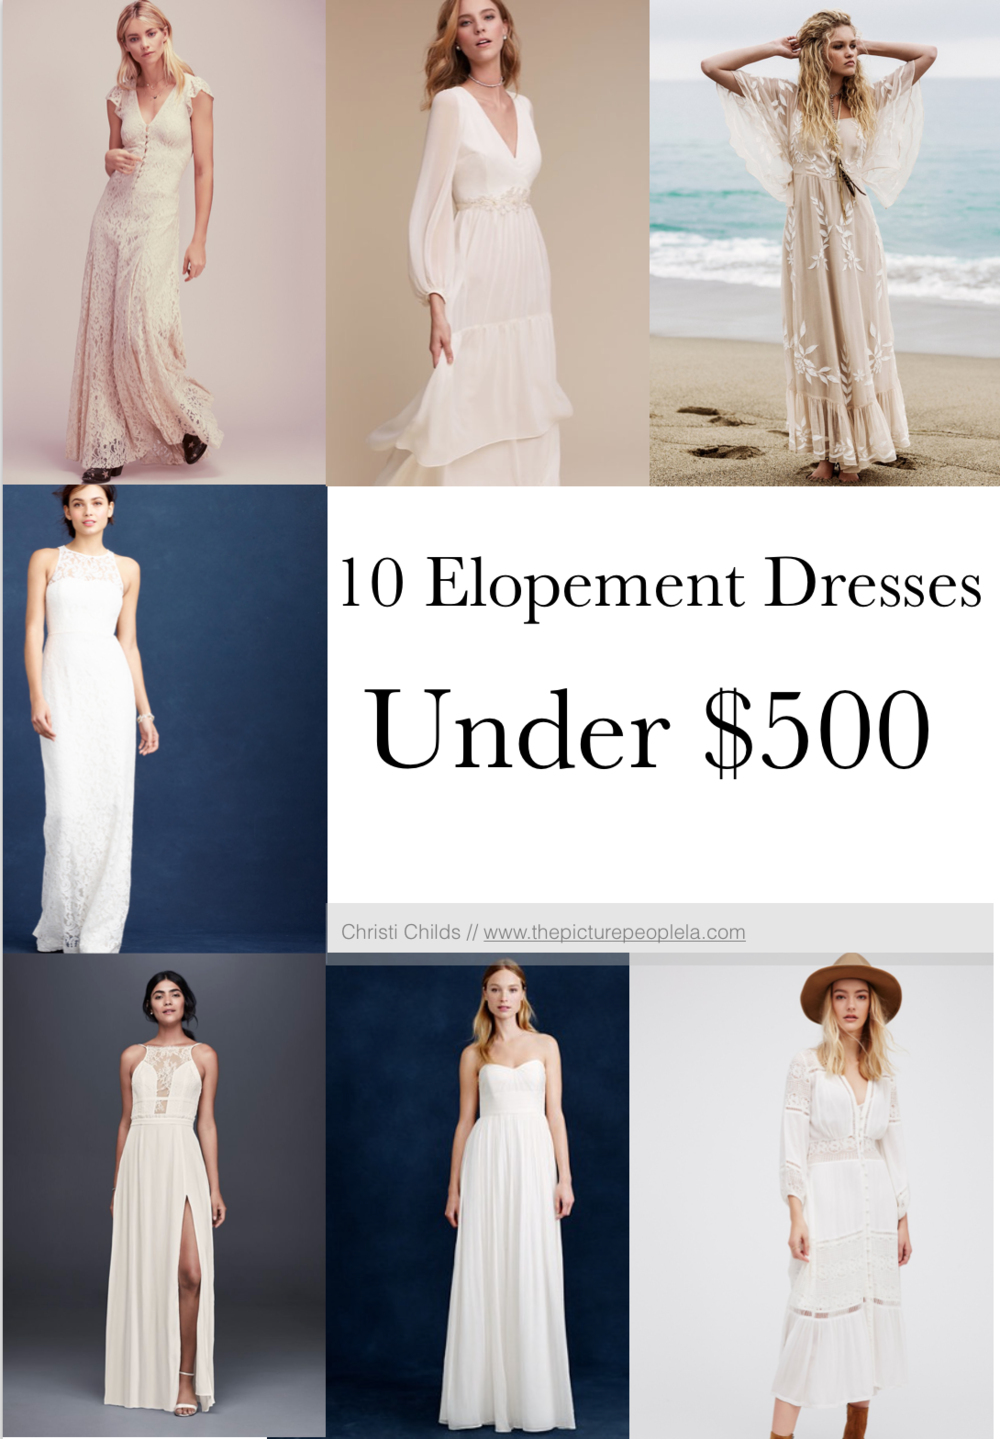 10 gorgeous elopement dresses under $500